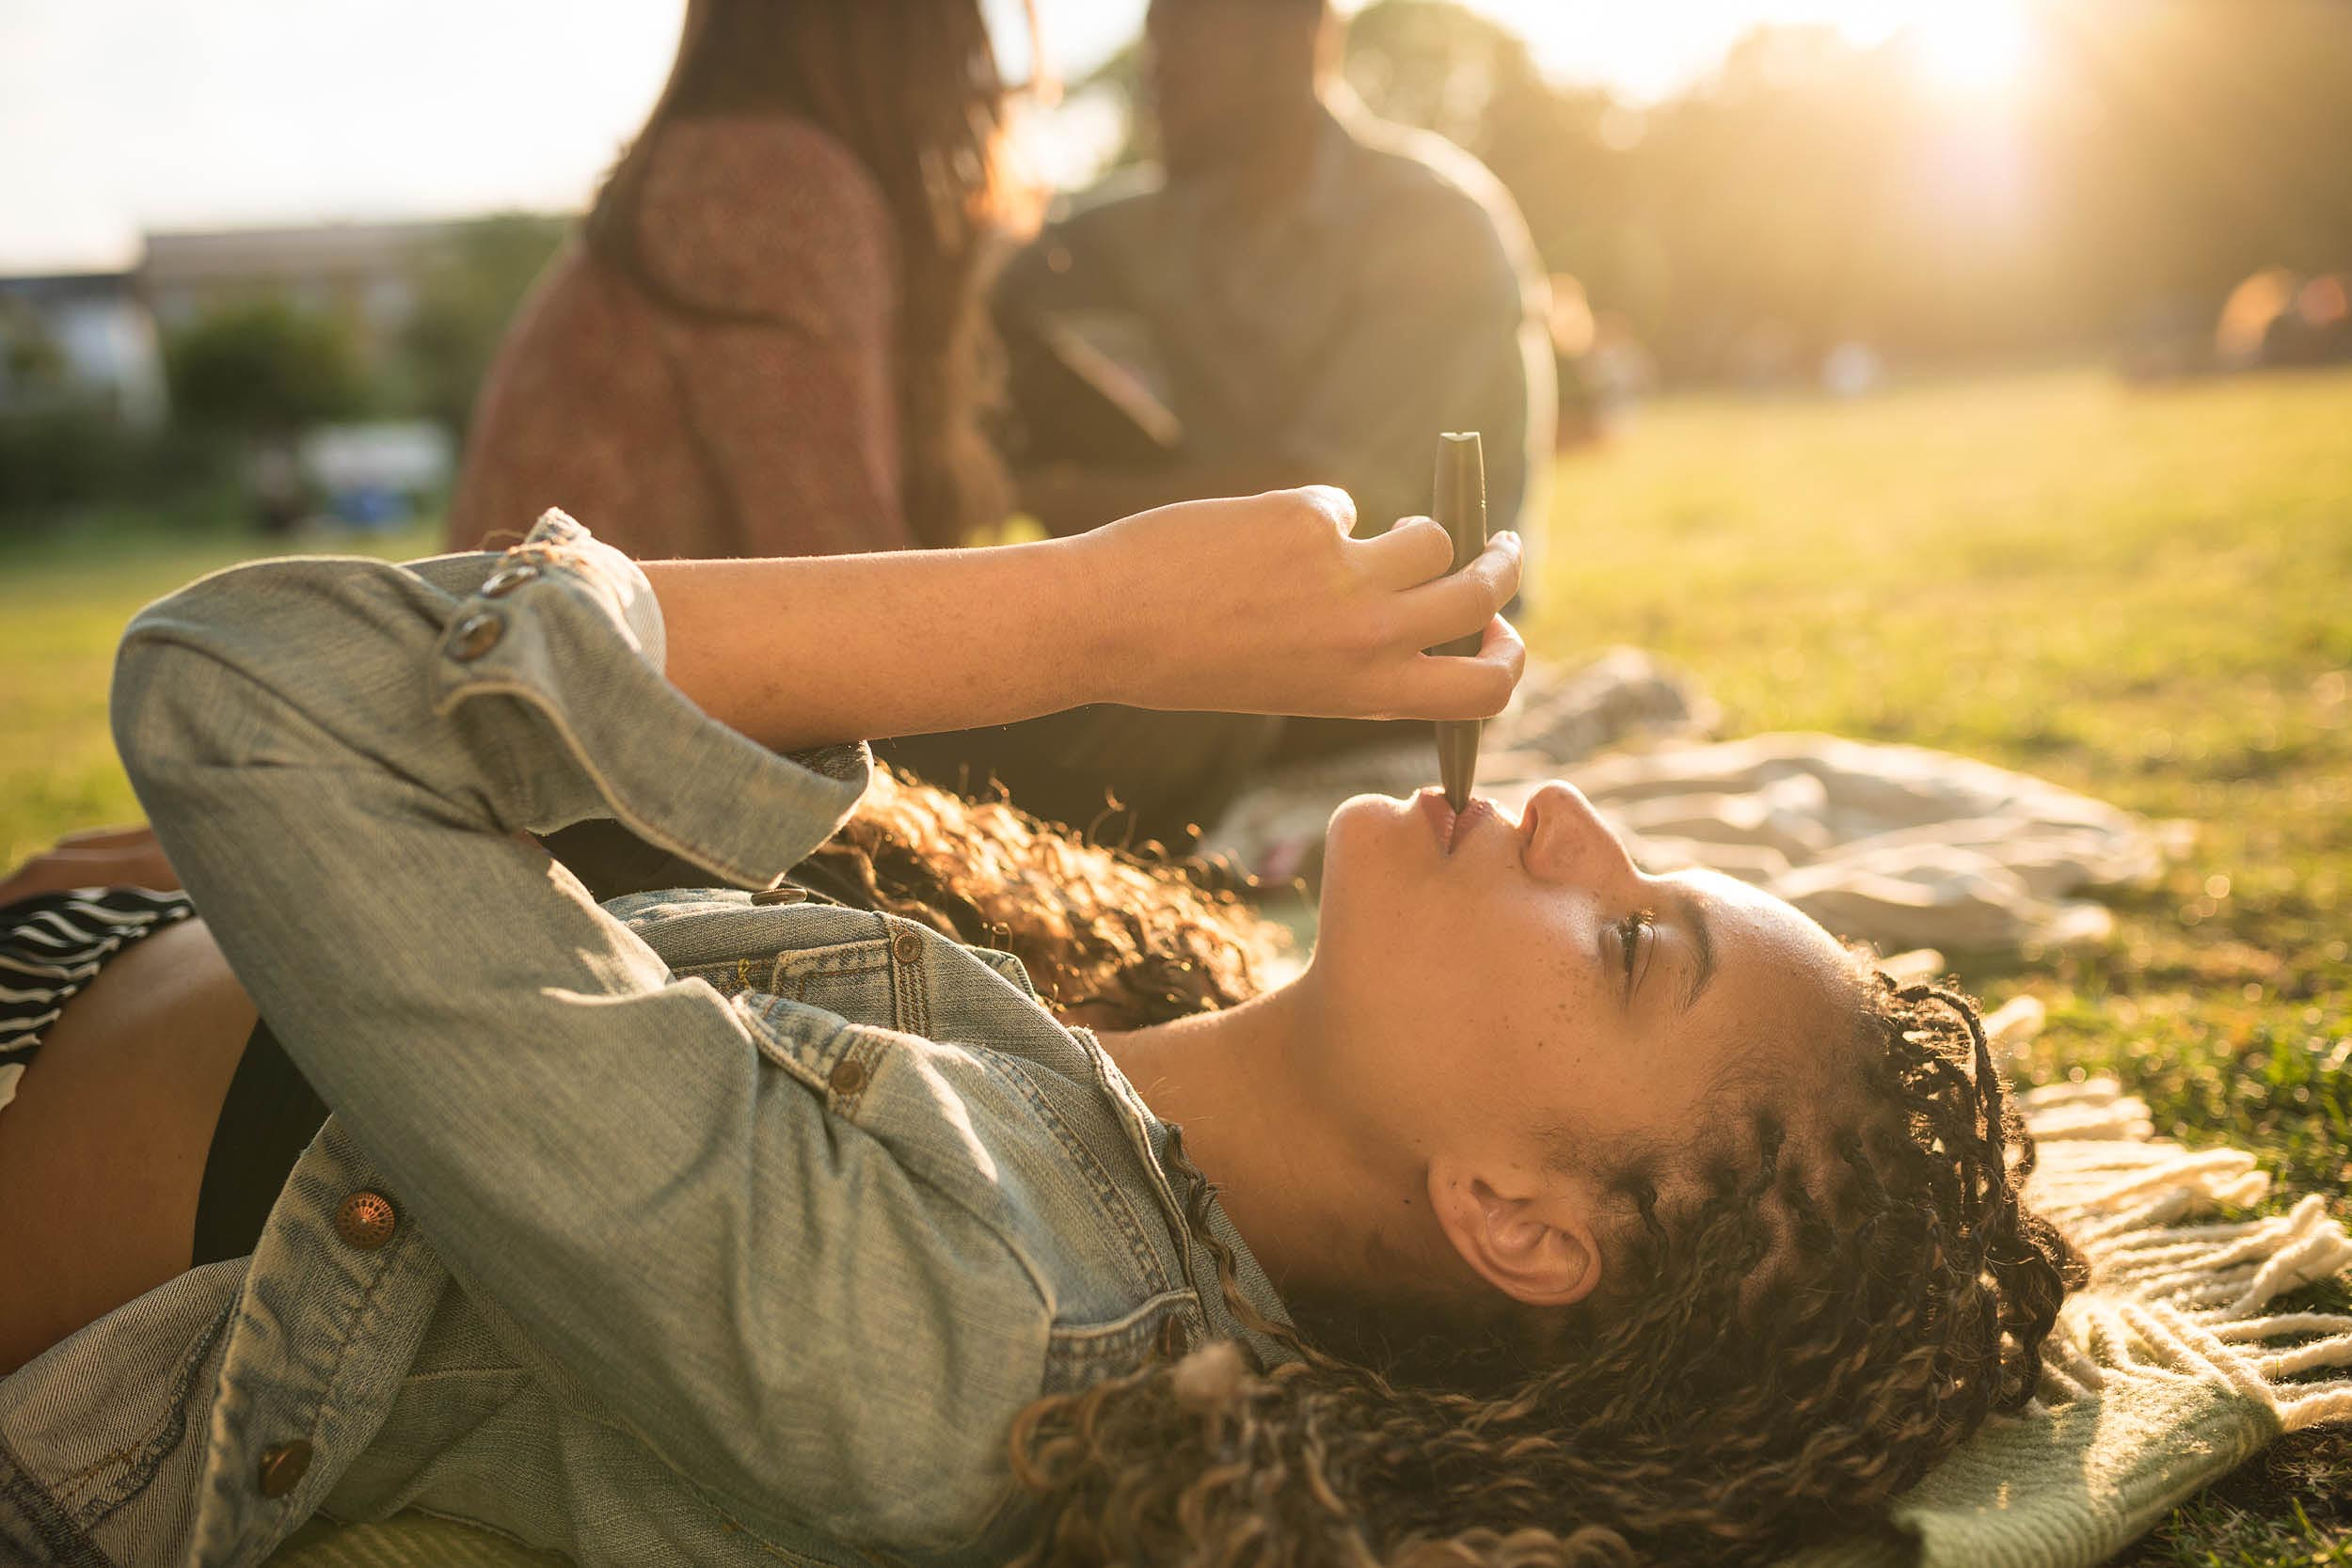 girl-vaping-relax-chilling-park-london-lifestyle-photographer